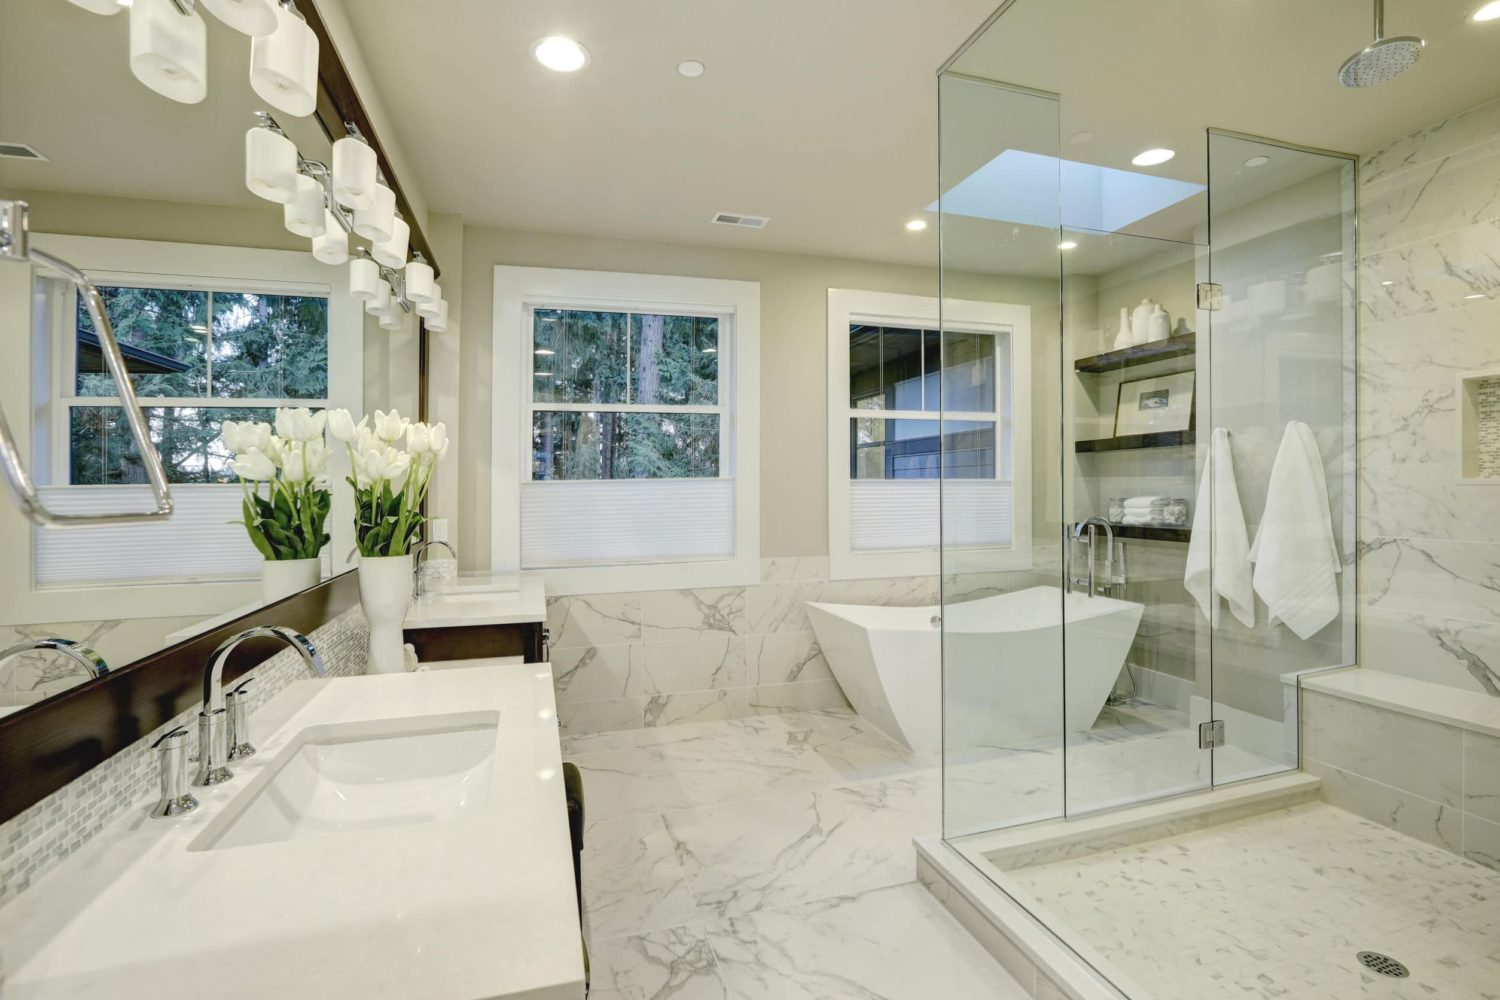 70308431 - amazing white and gray marble master bathroom with large glass walk-in shower, freestanding tub and skylights on the ceiling. northwest, usa